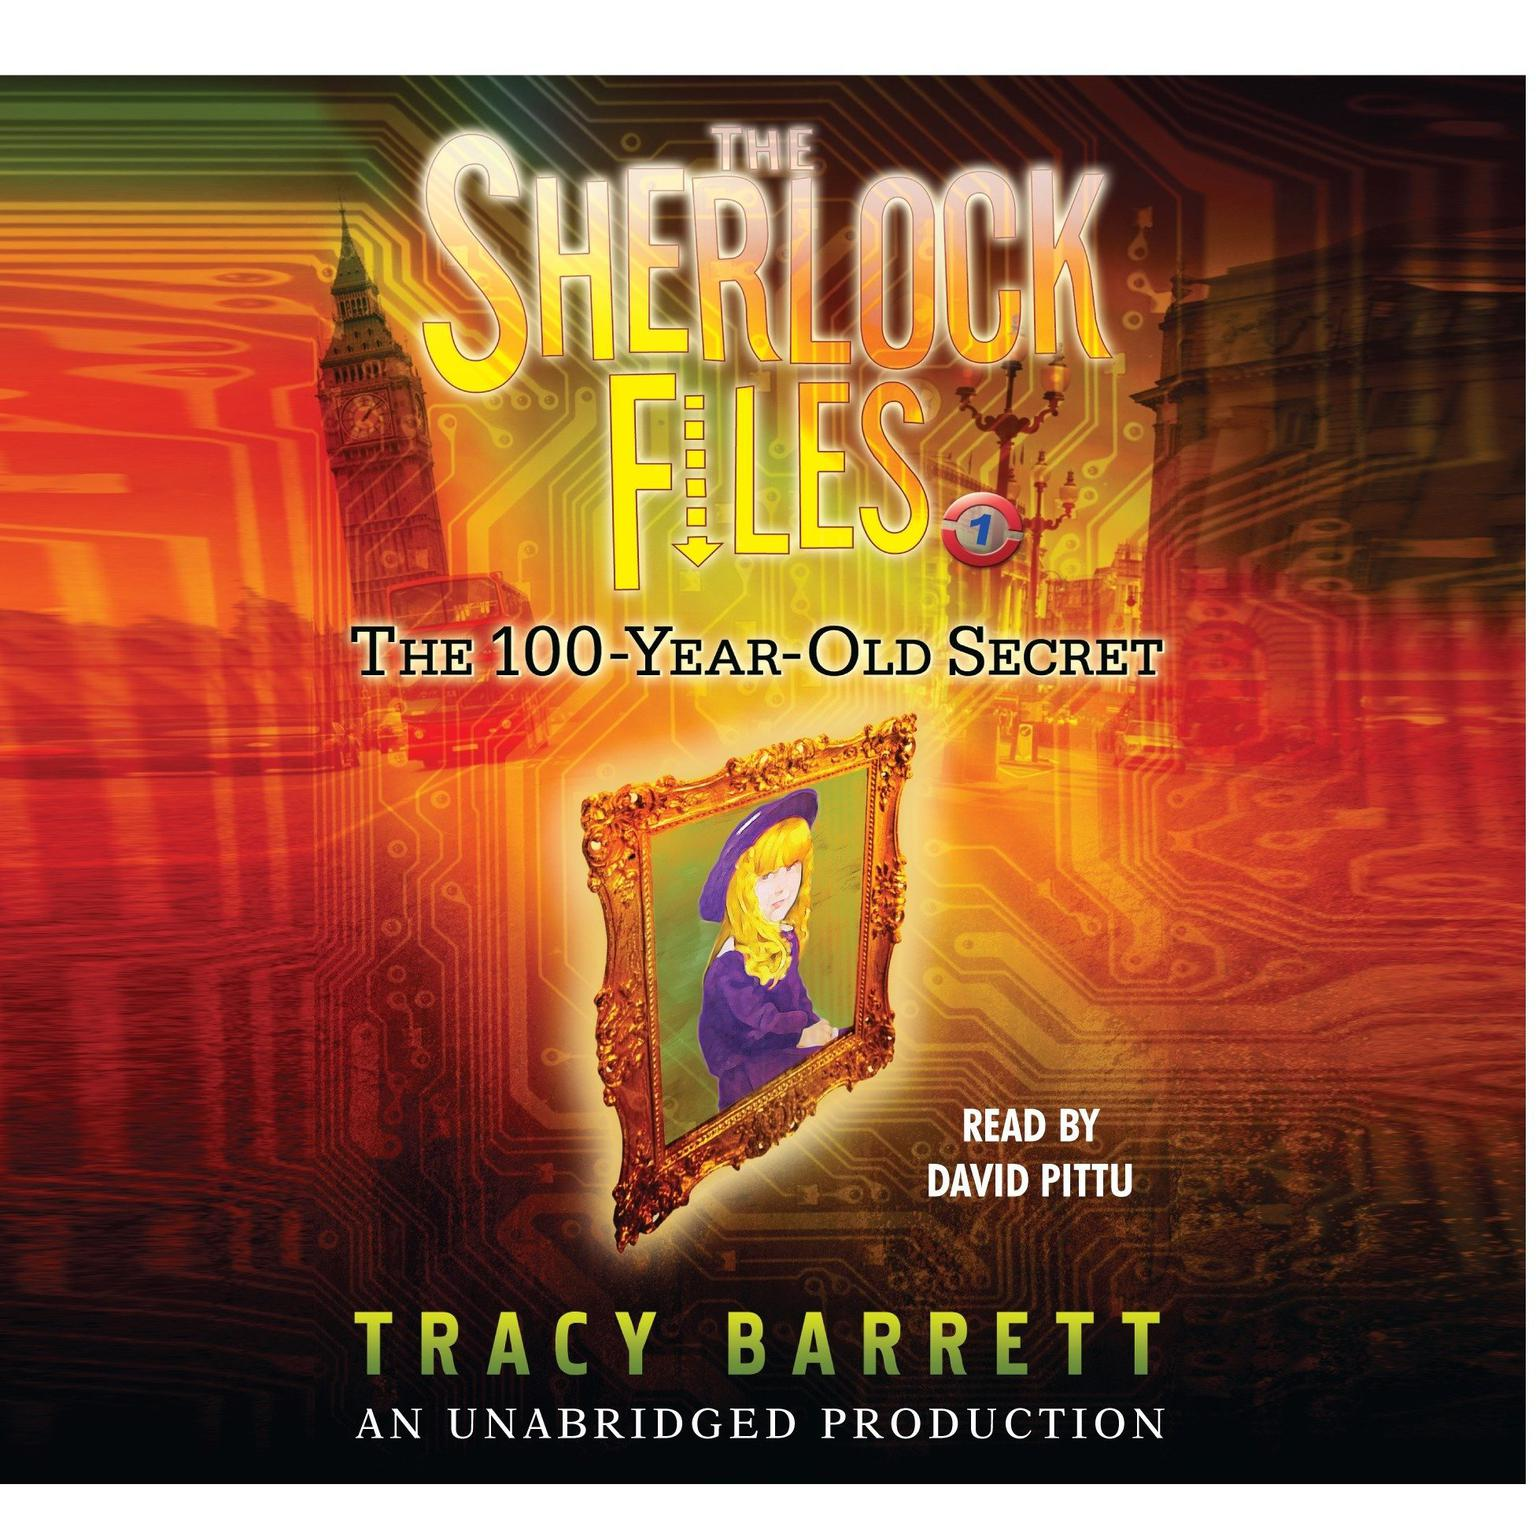 Printable The 100-Year-Old Secret: The Sherlock Files #1 Audiobook Cover Art